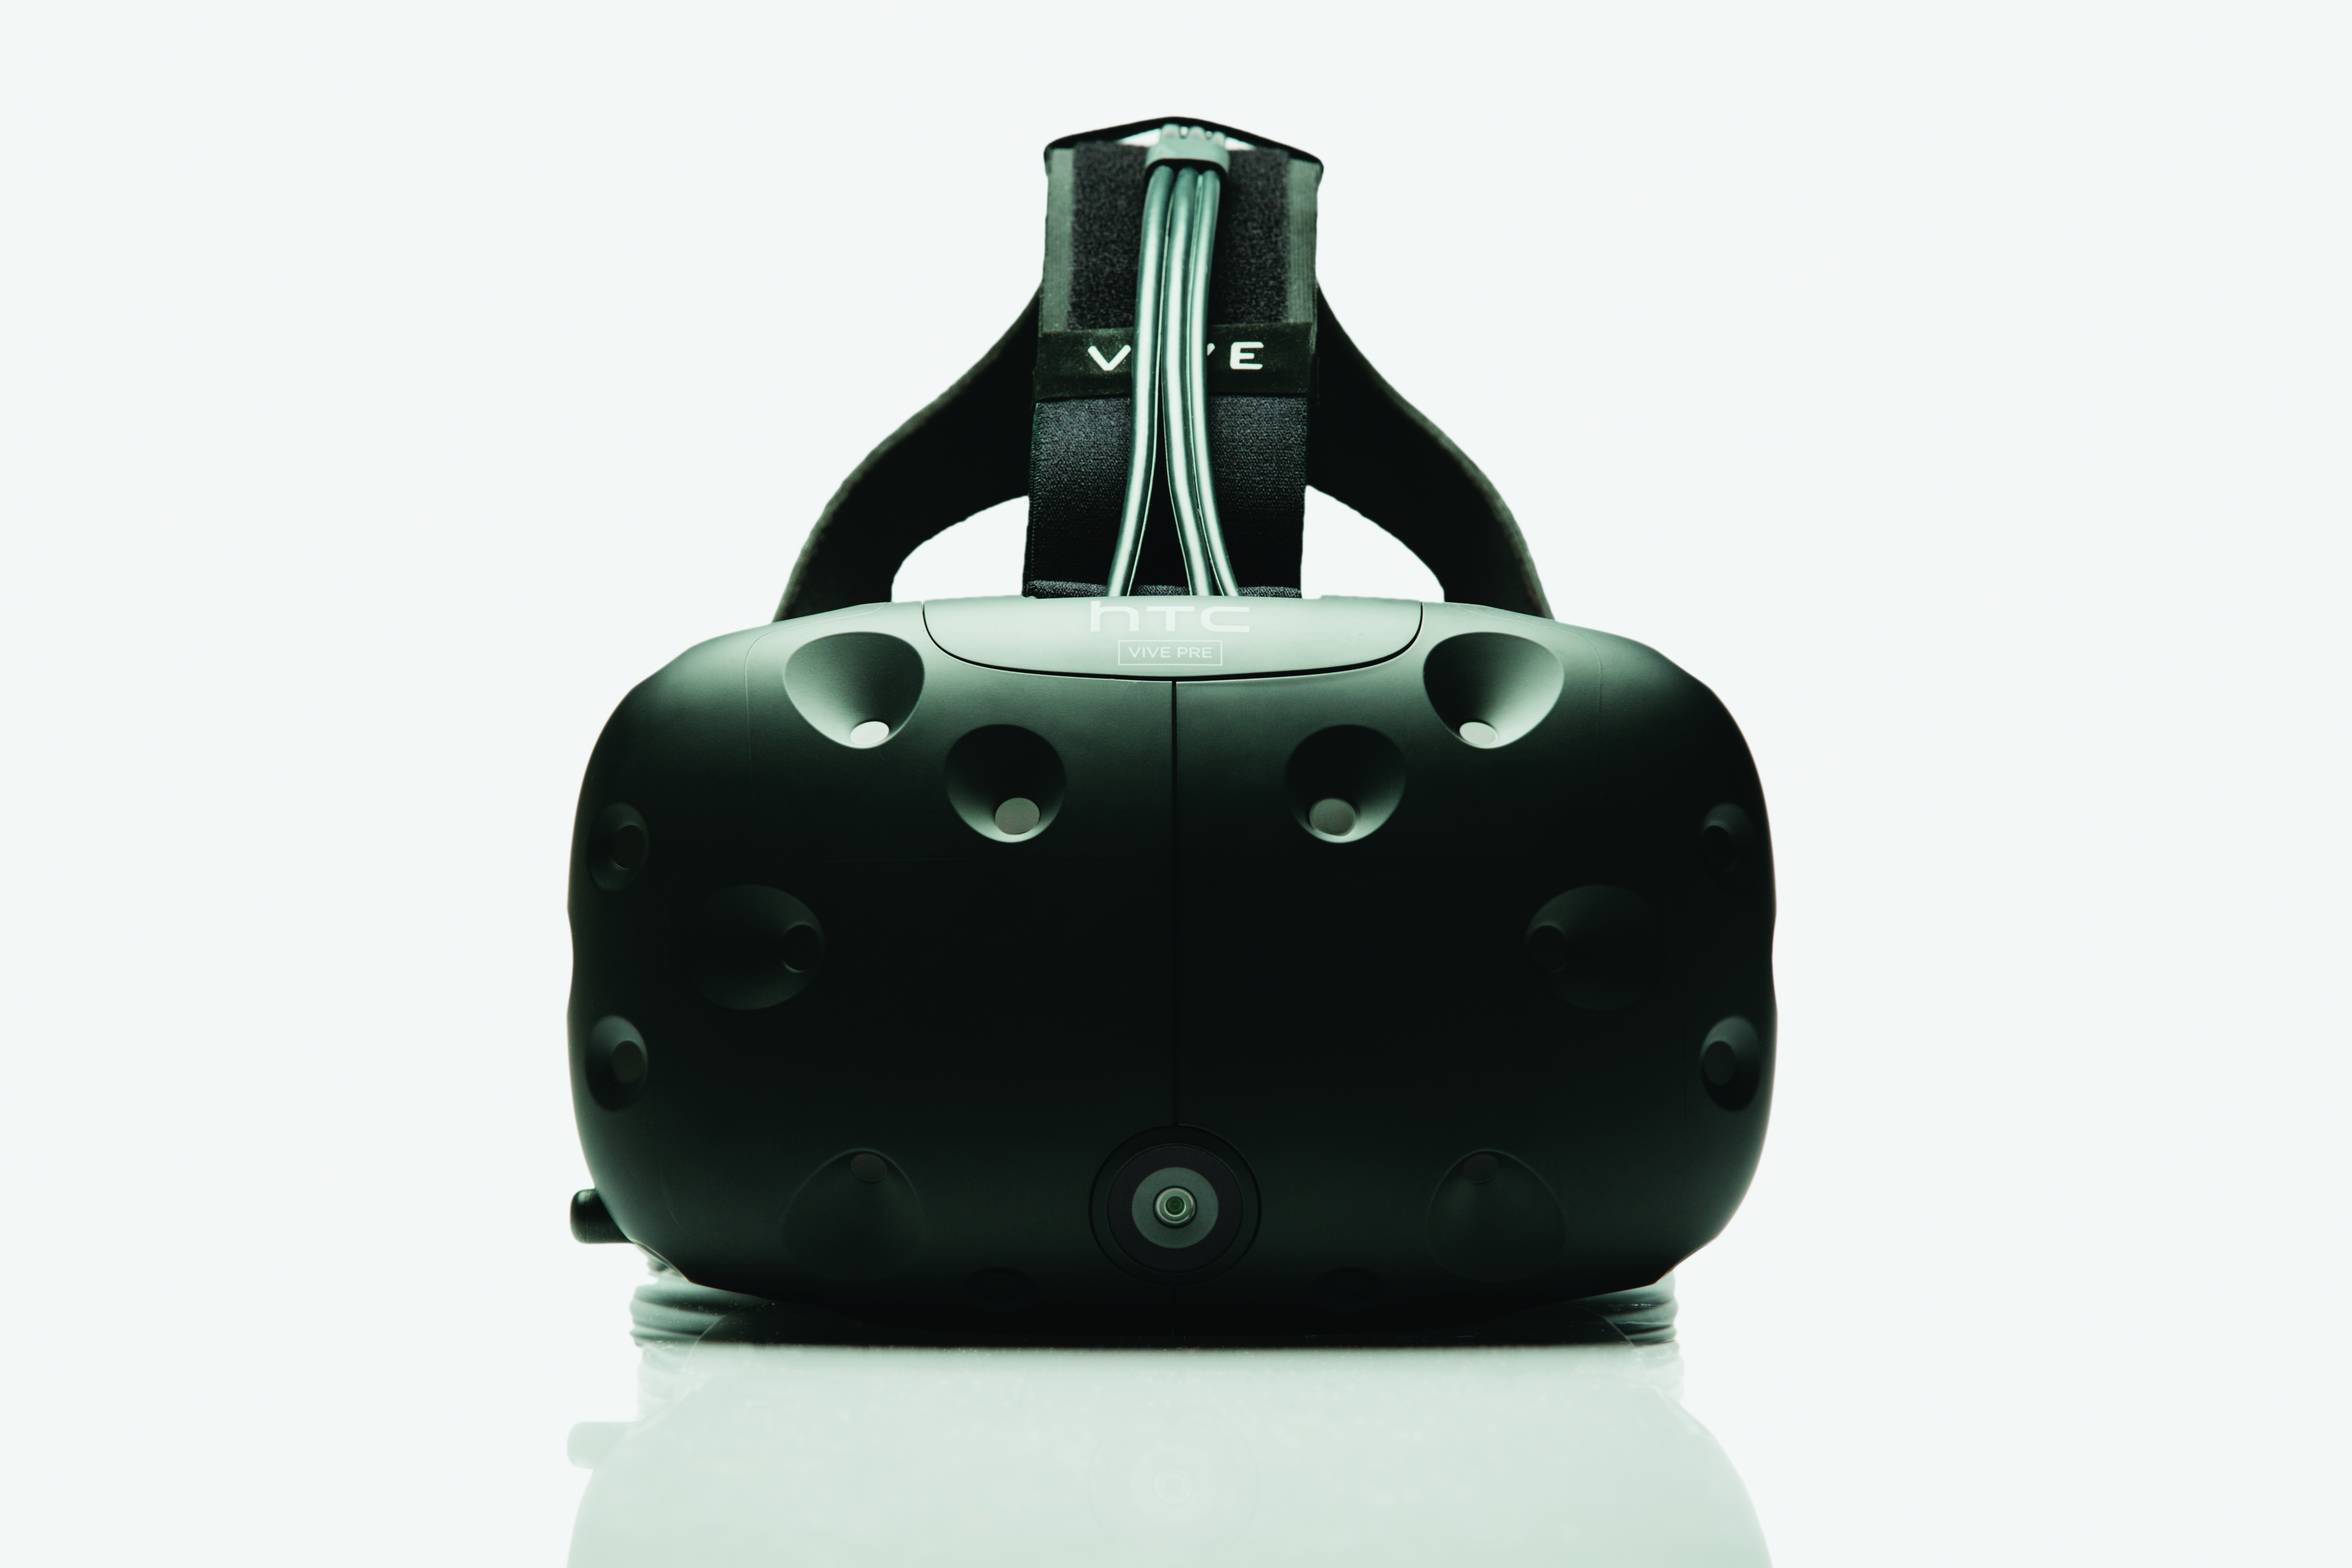 HTC Vive product